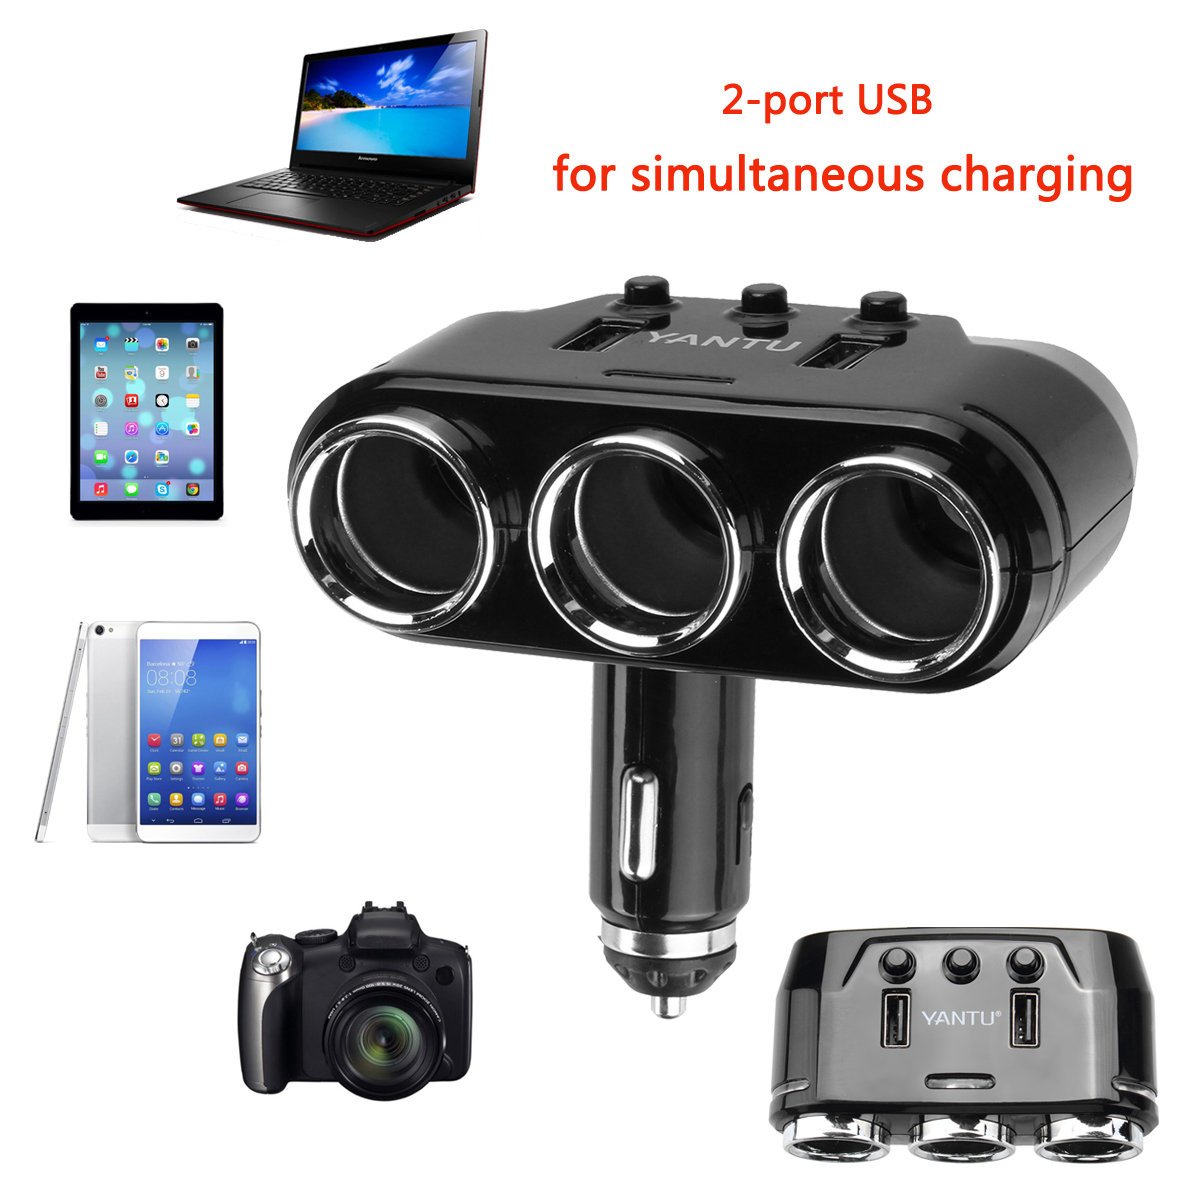 Dual USB Port 3 Way Auto Charger Car C igarette L ighter Socket Splitter Adapter